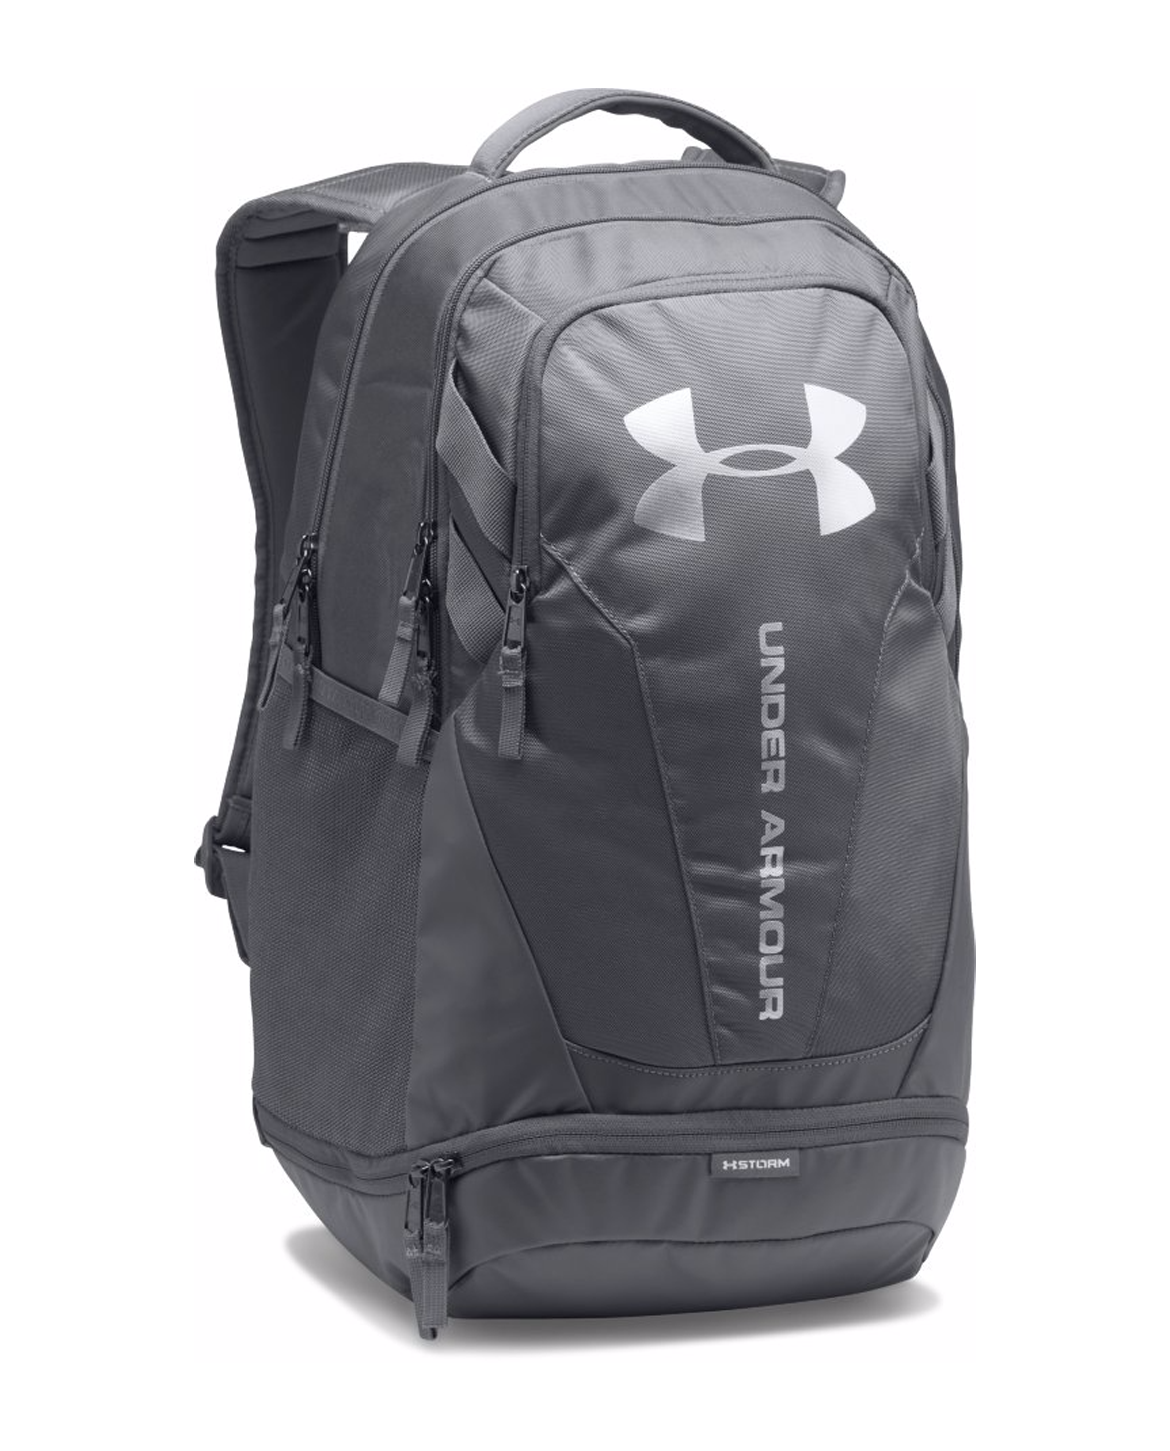 Under Armour 1294720 UA Storm Hustle 3.0 Backpack Water